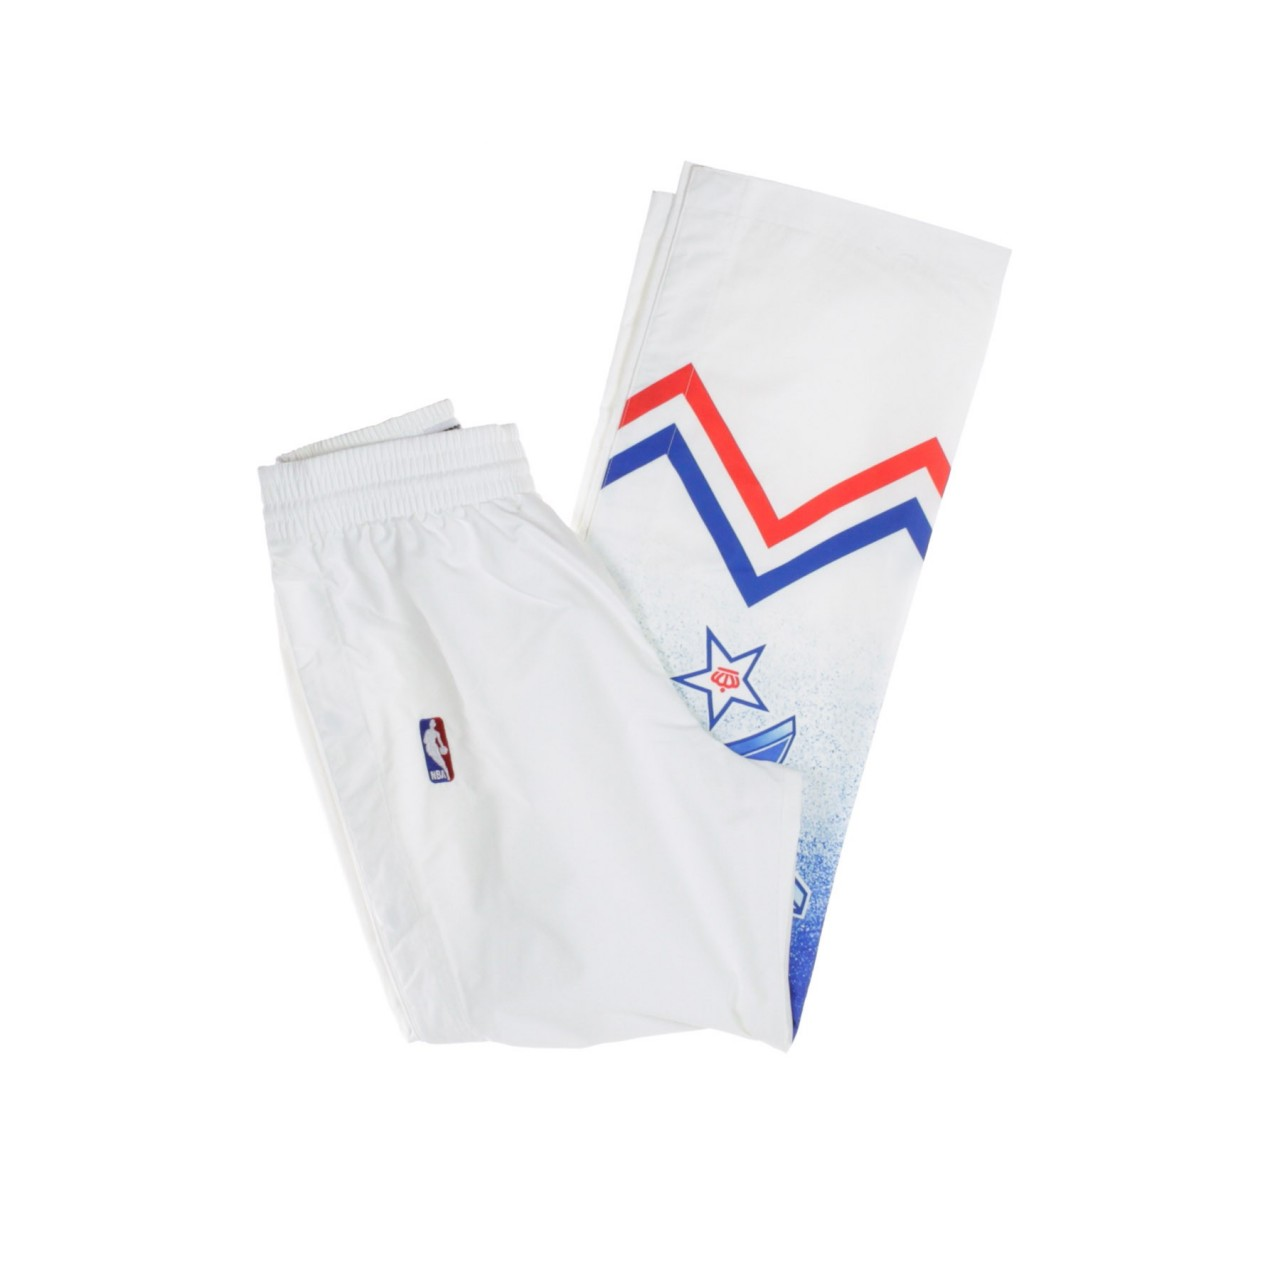 MITCHELL & NESS ALL STAR WARM UP PANTS ALL STAR GAME EAST 1991 AWPTEL18002-ASEWHIT91